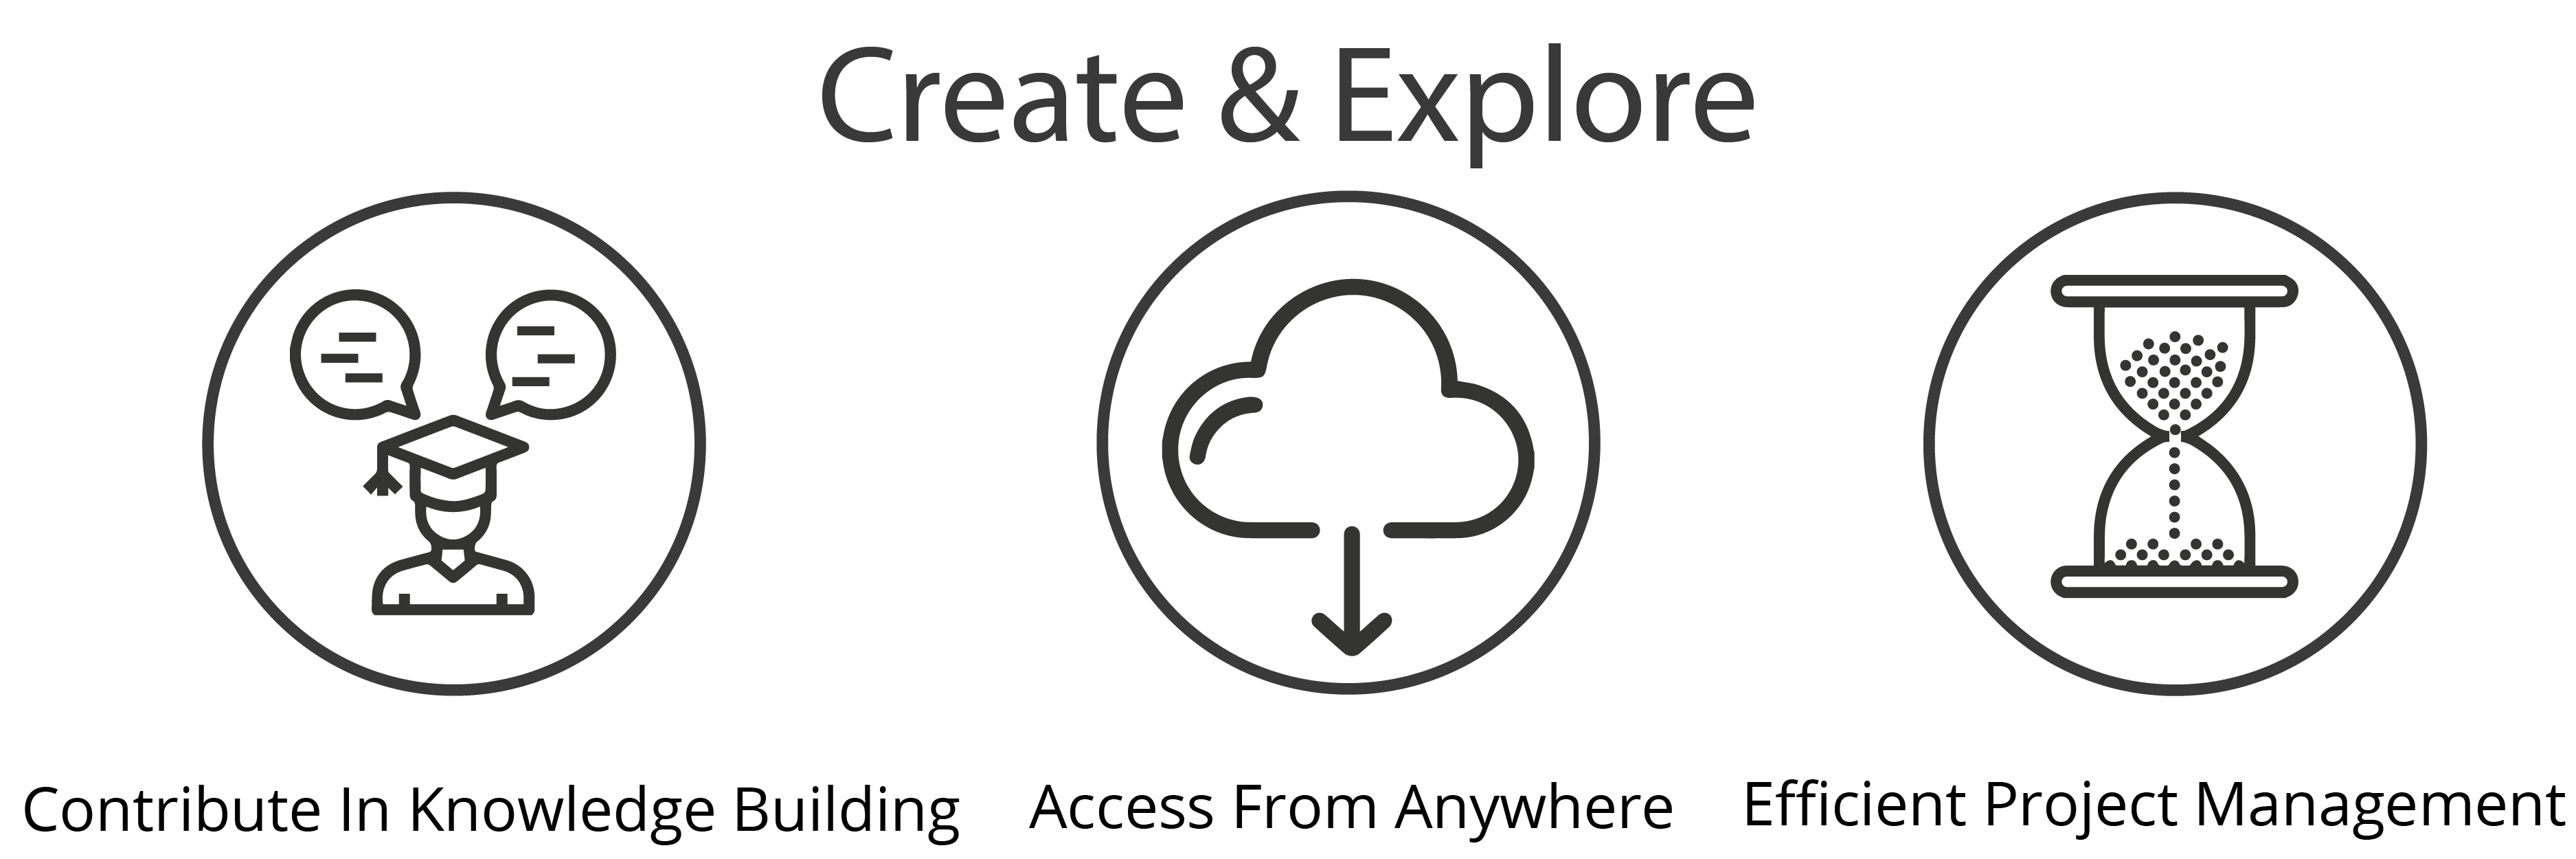 IT team can create and explore on Vneda: Contribute to knowledge building, Access from anywhere, Efficient Project Management